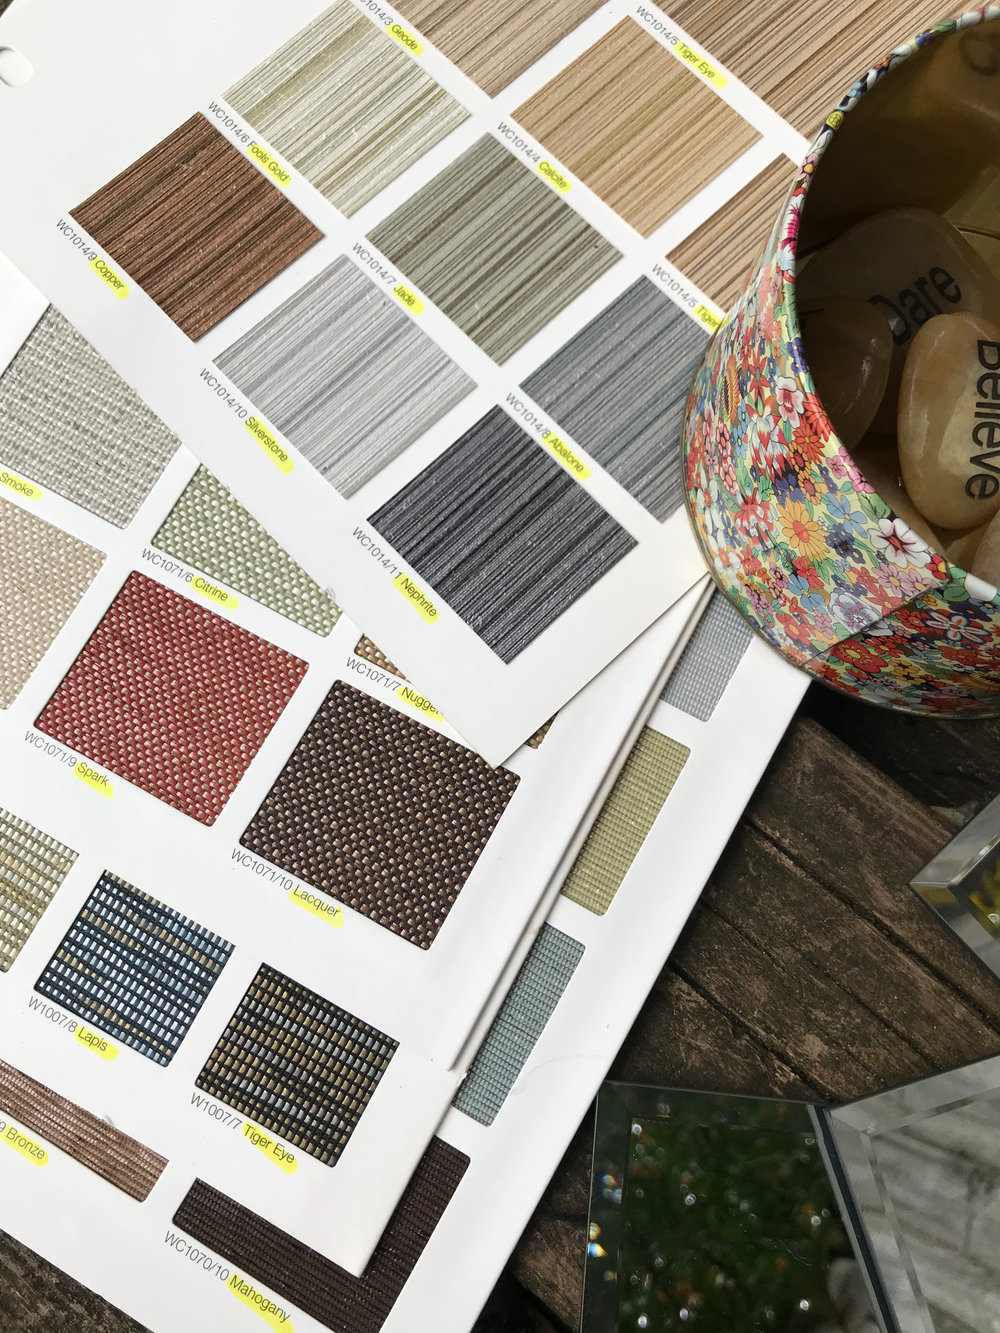 Fabric samples help out with color names.